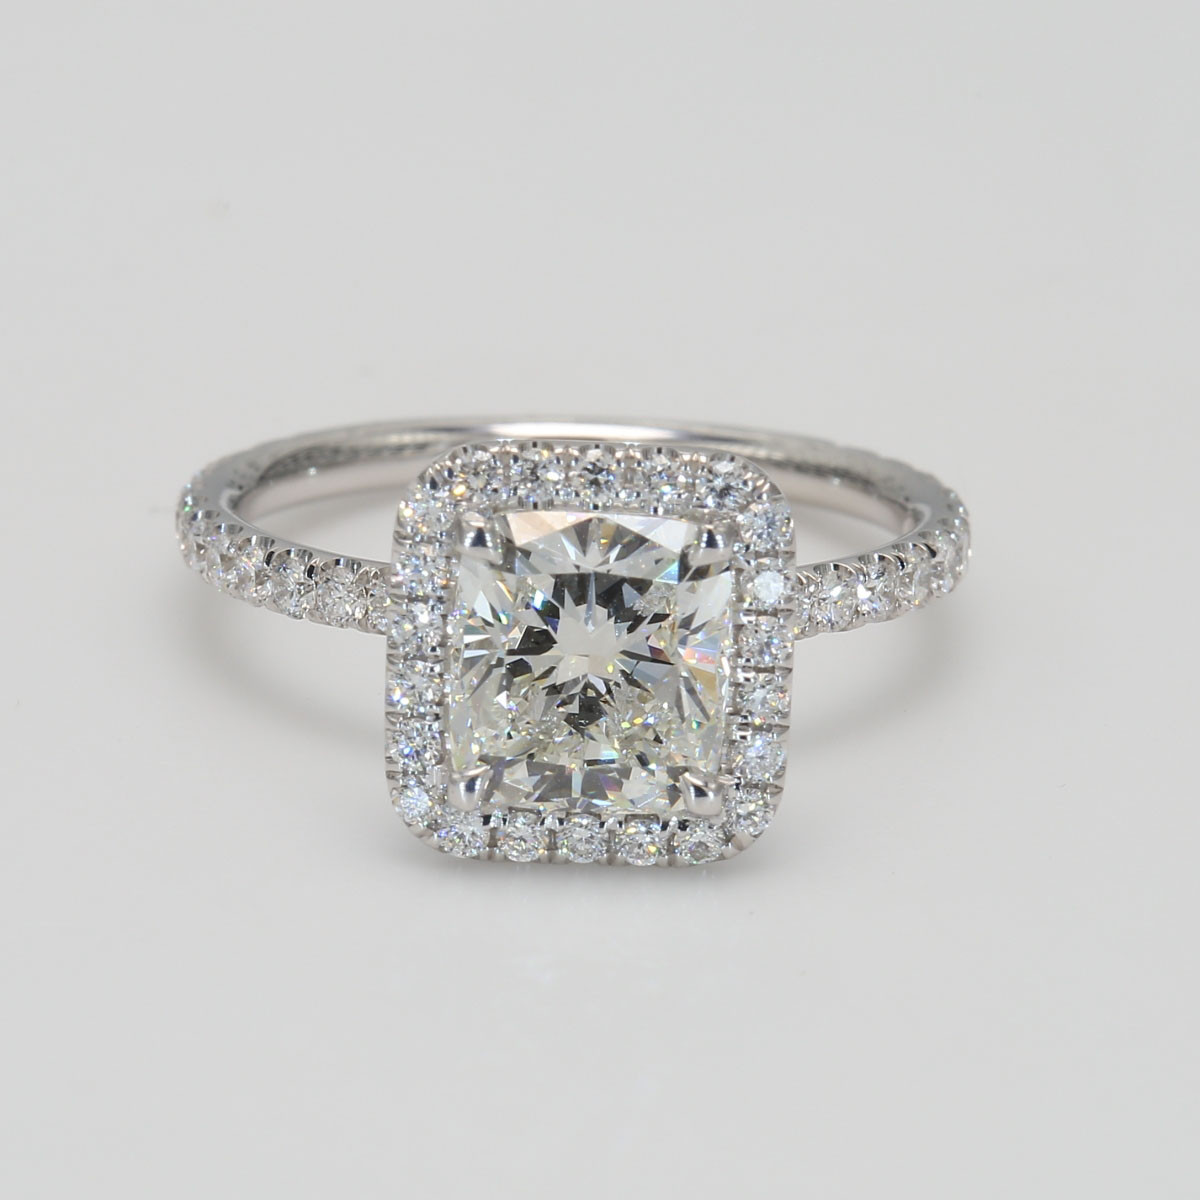 1.80Ct Cushion Cut Diamond Halo Engagement Ring in White Gold